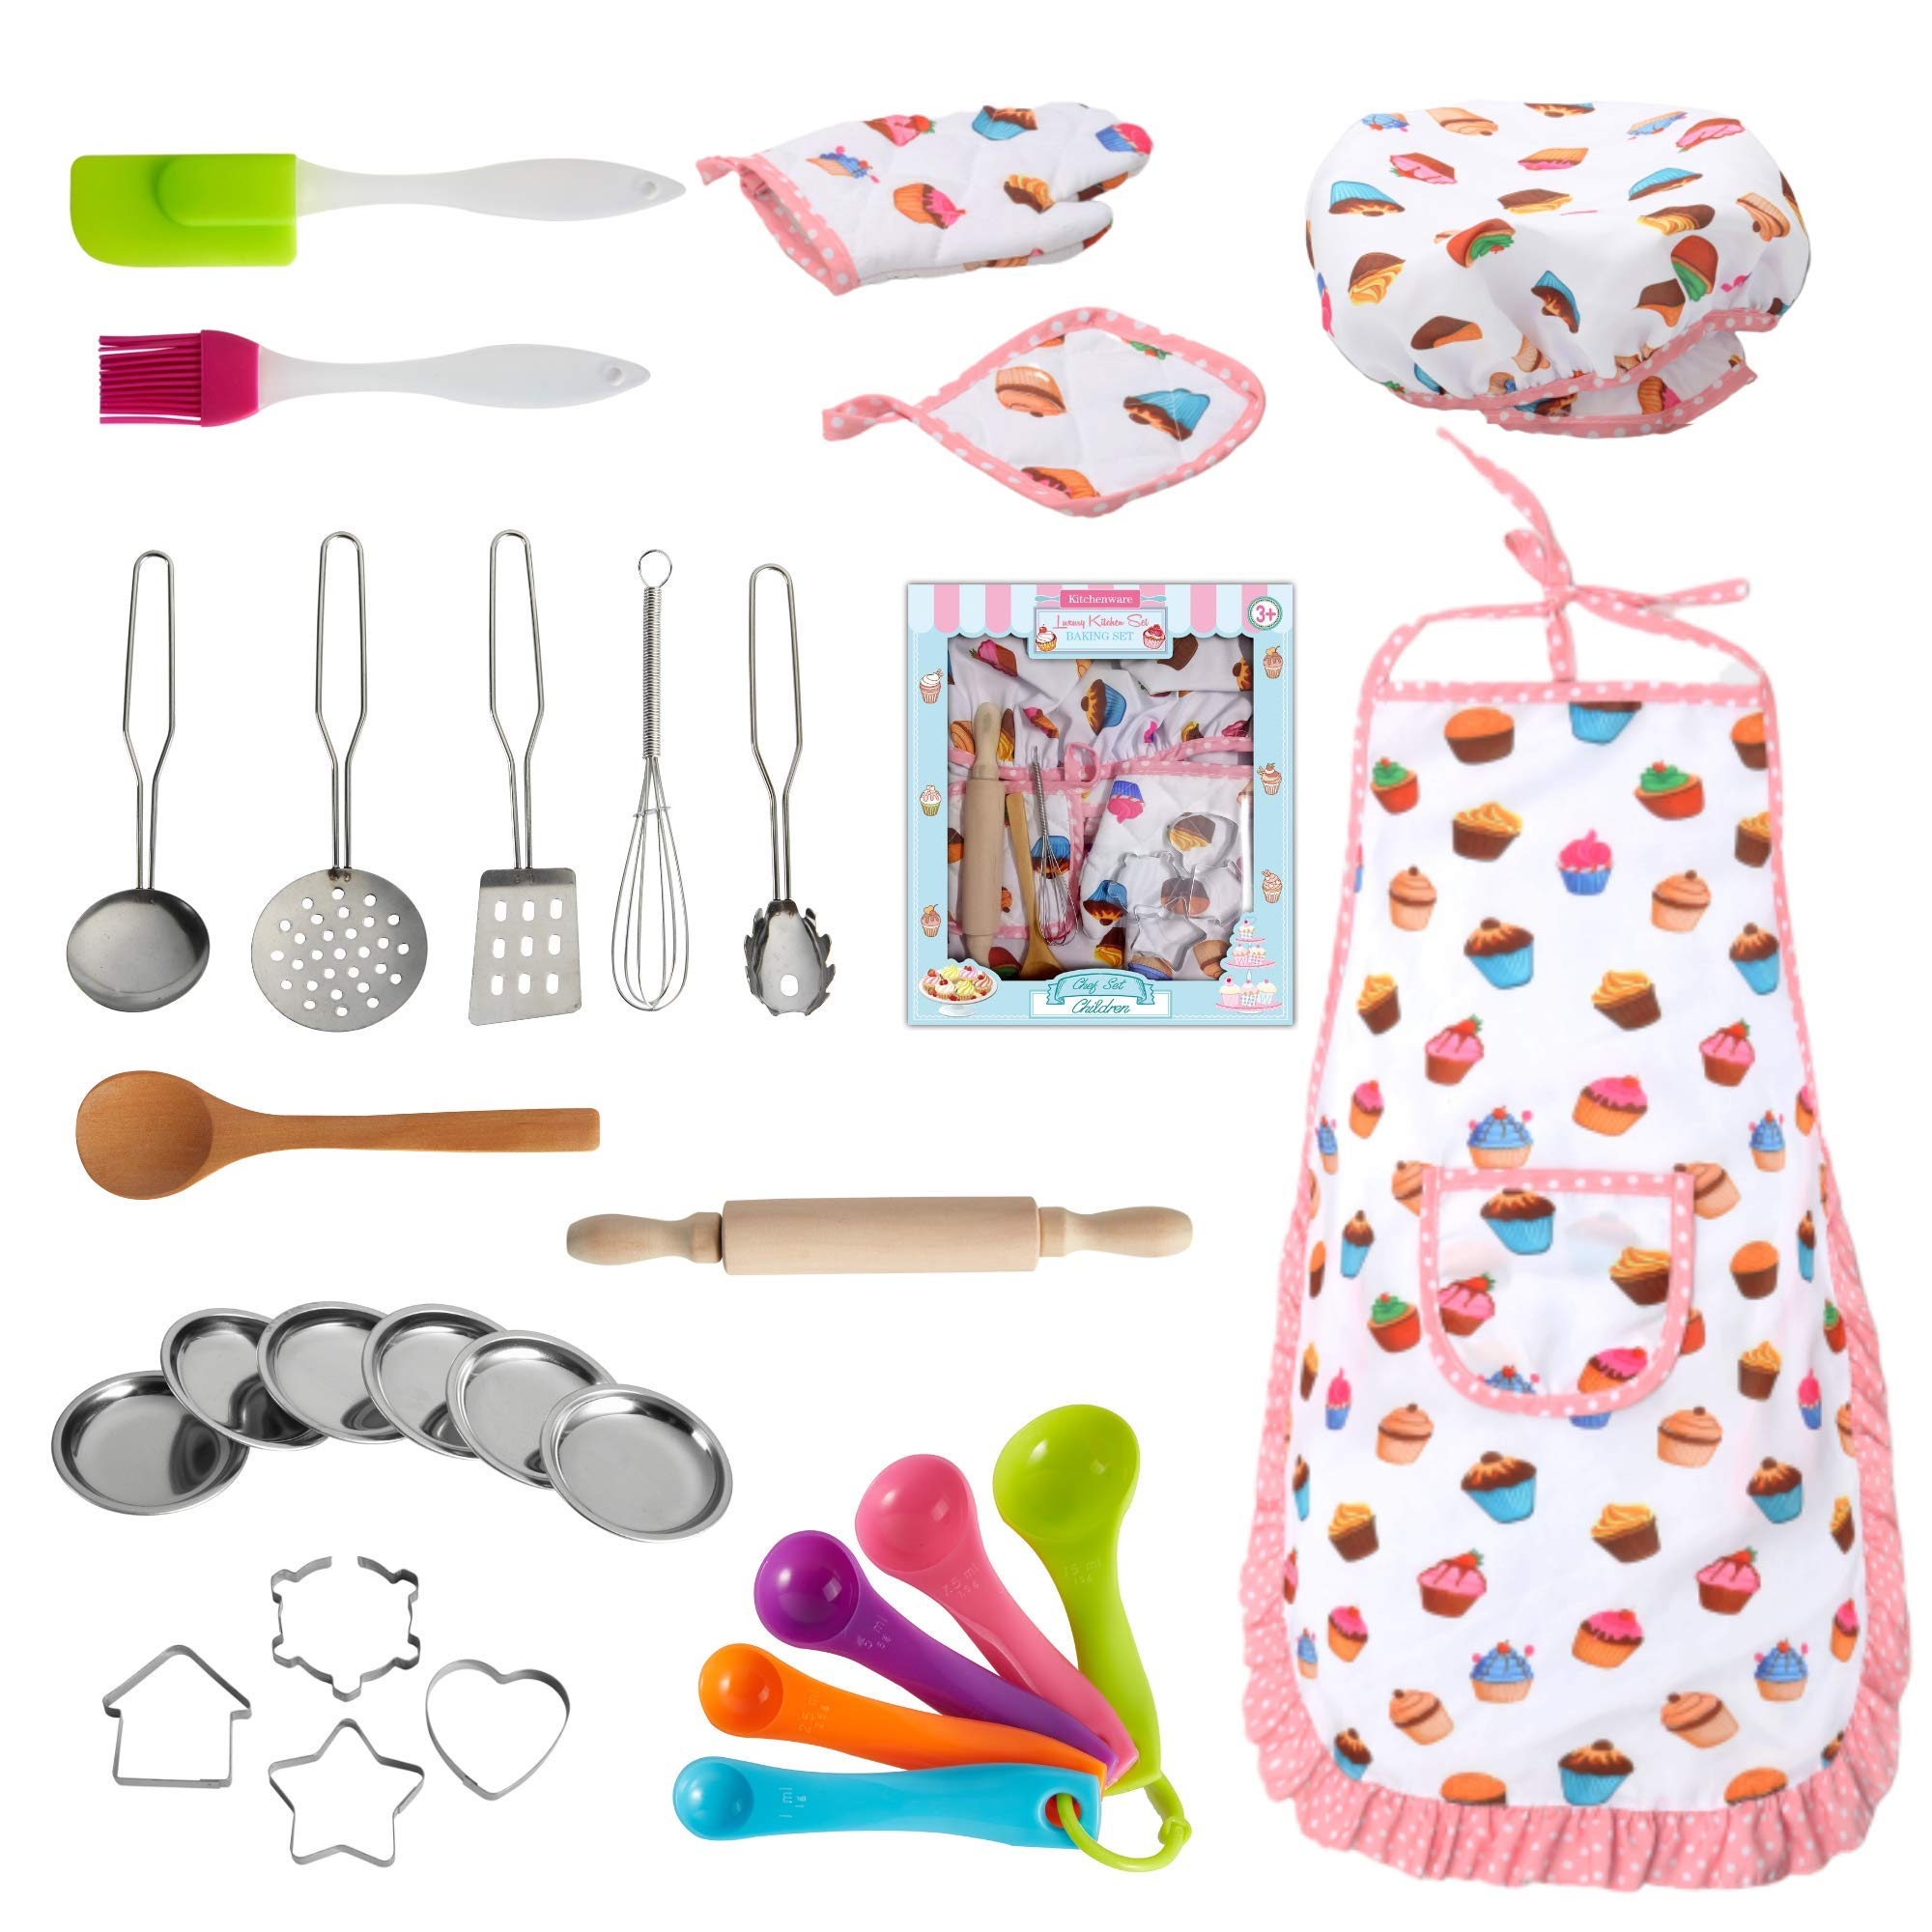 Nearbyme Kids Cooking and Baking Chef Set - 28 Pcs Includes Apron, Chef Hat, Oven Mitt, Pot Holders, Plates, Rolling Pin, Spoon, Cookie Cutters and Baking Utensil for Age 3+ Girls Gift by Nearbyme